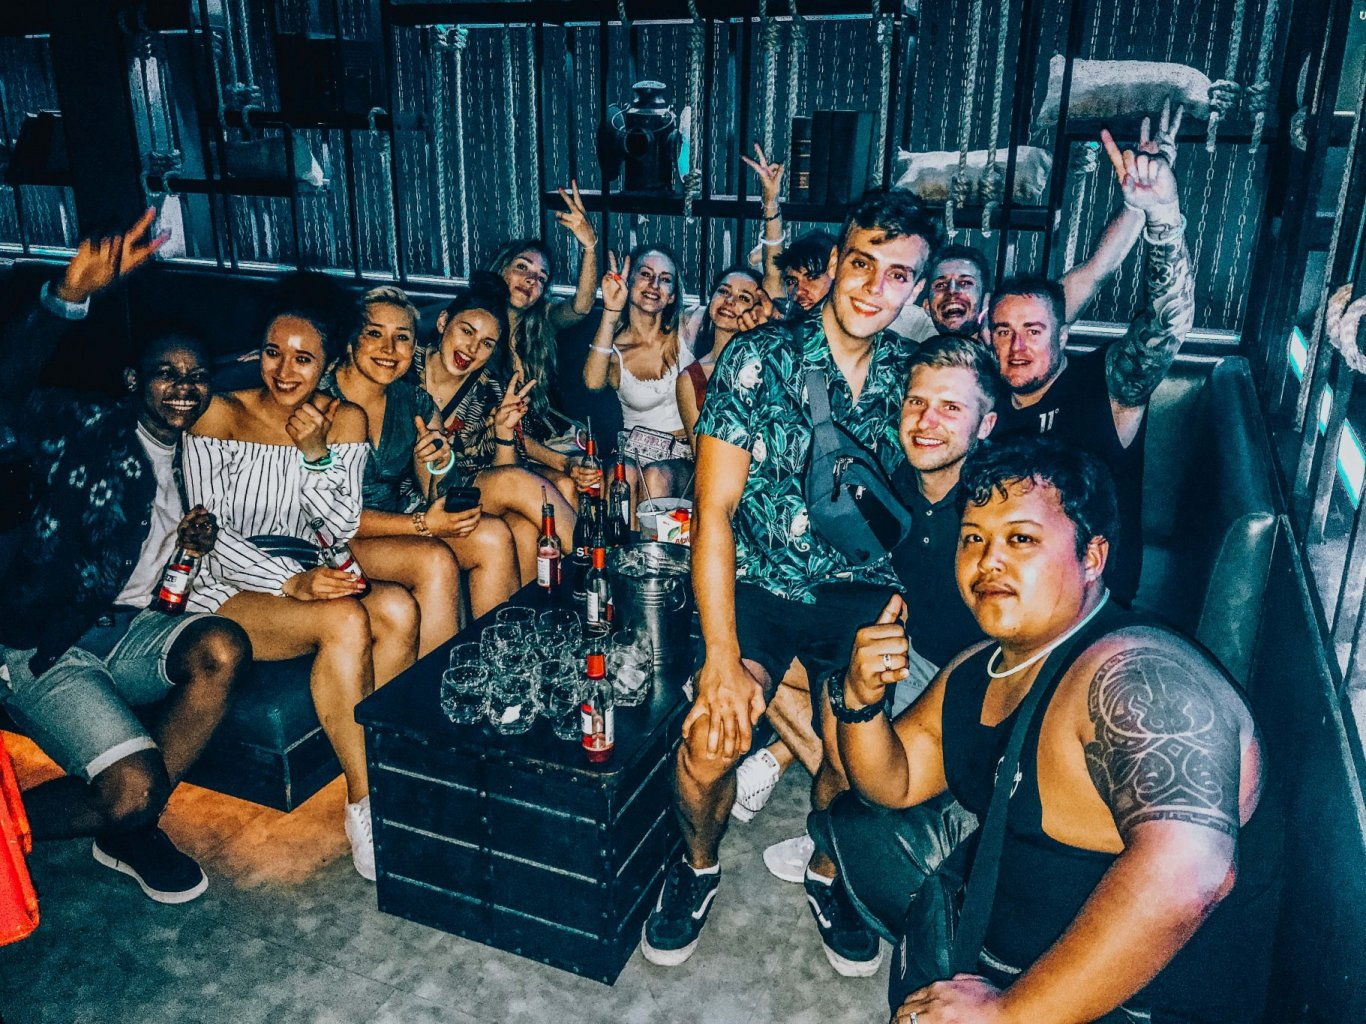 Group at a bar, Cancun Mexico